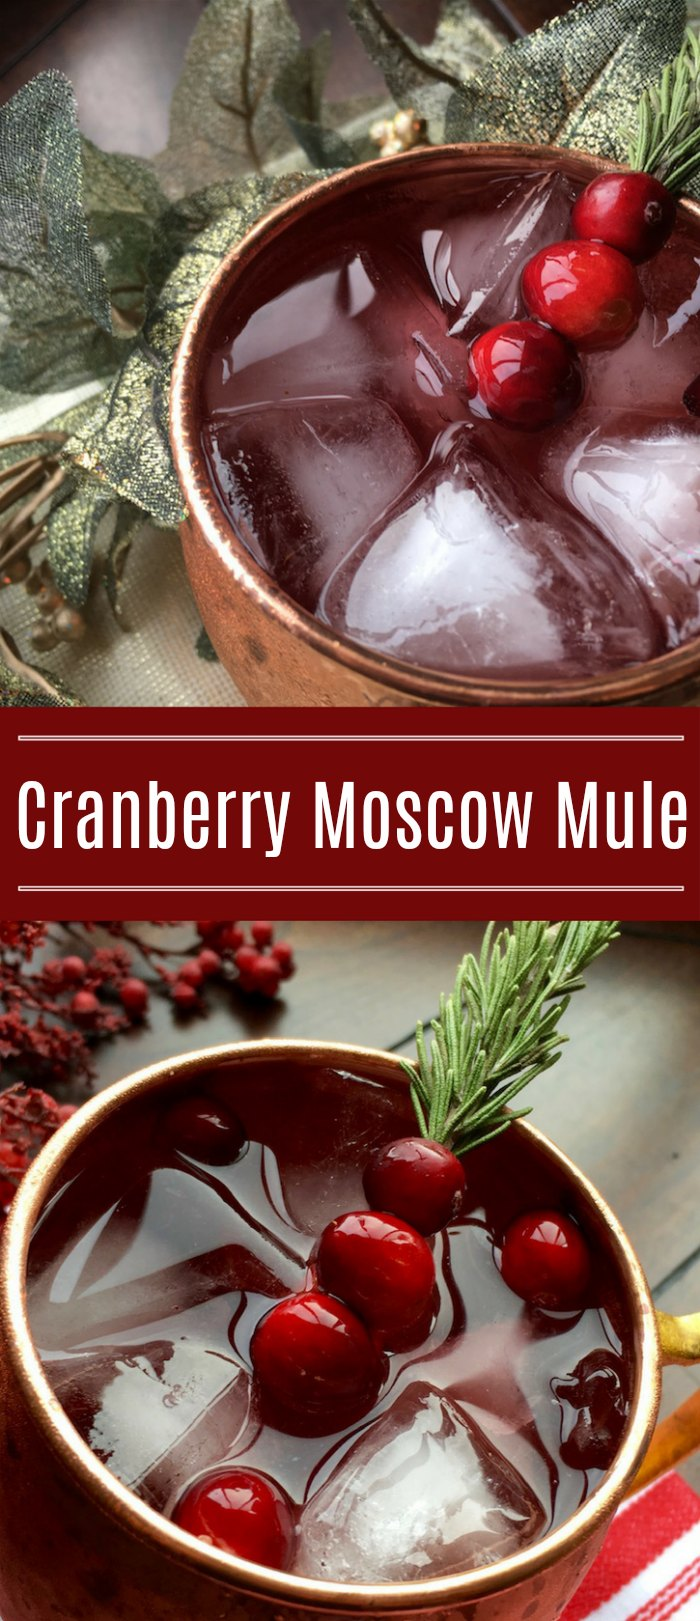 Cranberry Moscow Mule Cocktail - A bright splash of seasonal color transforms this classic cocktail into a new holiday favorite | Mommy Evolution #christmascocktail #wintercocktail